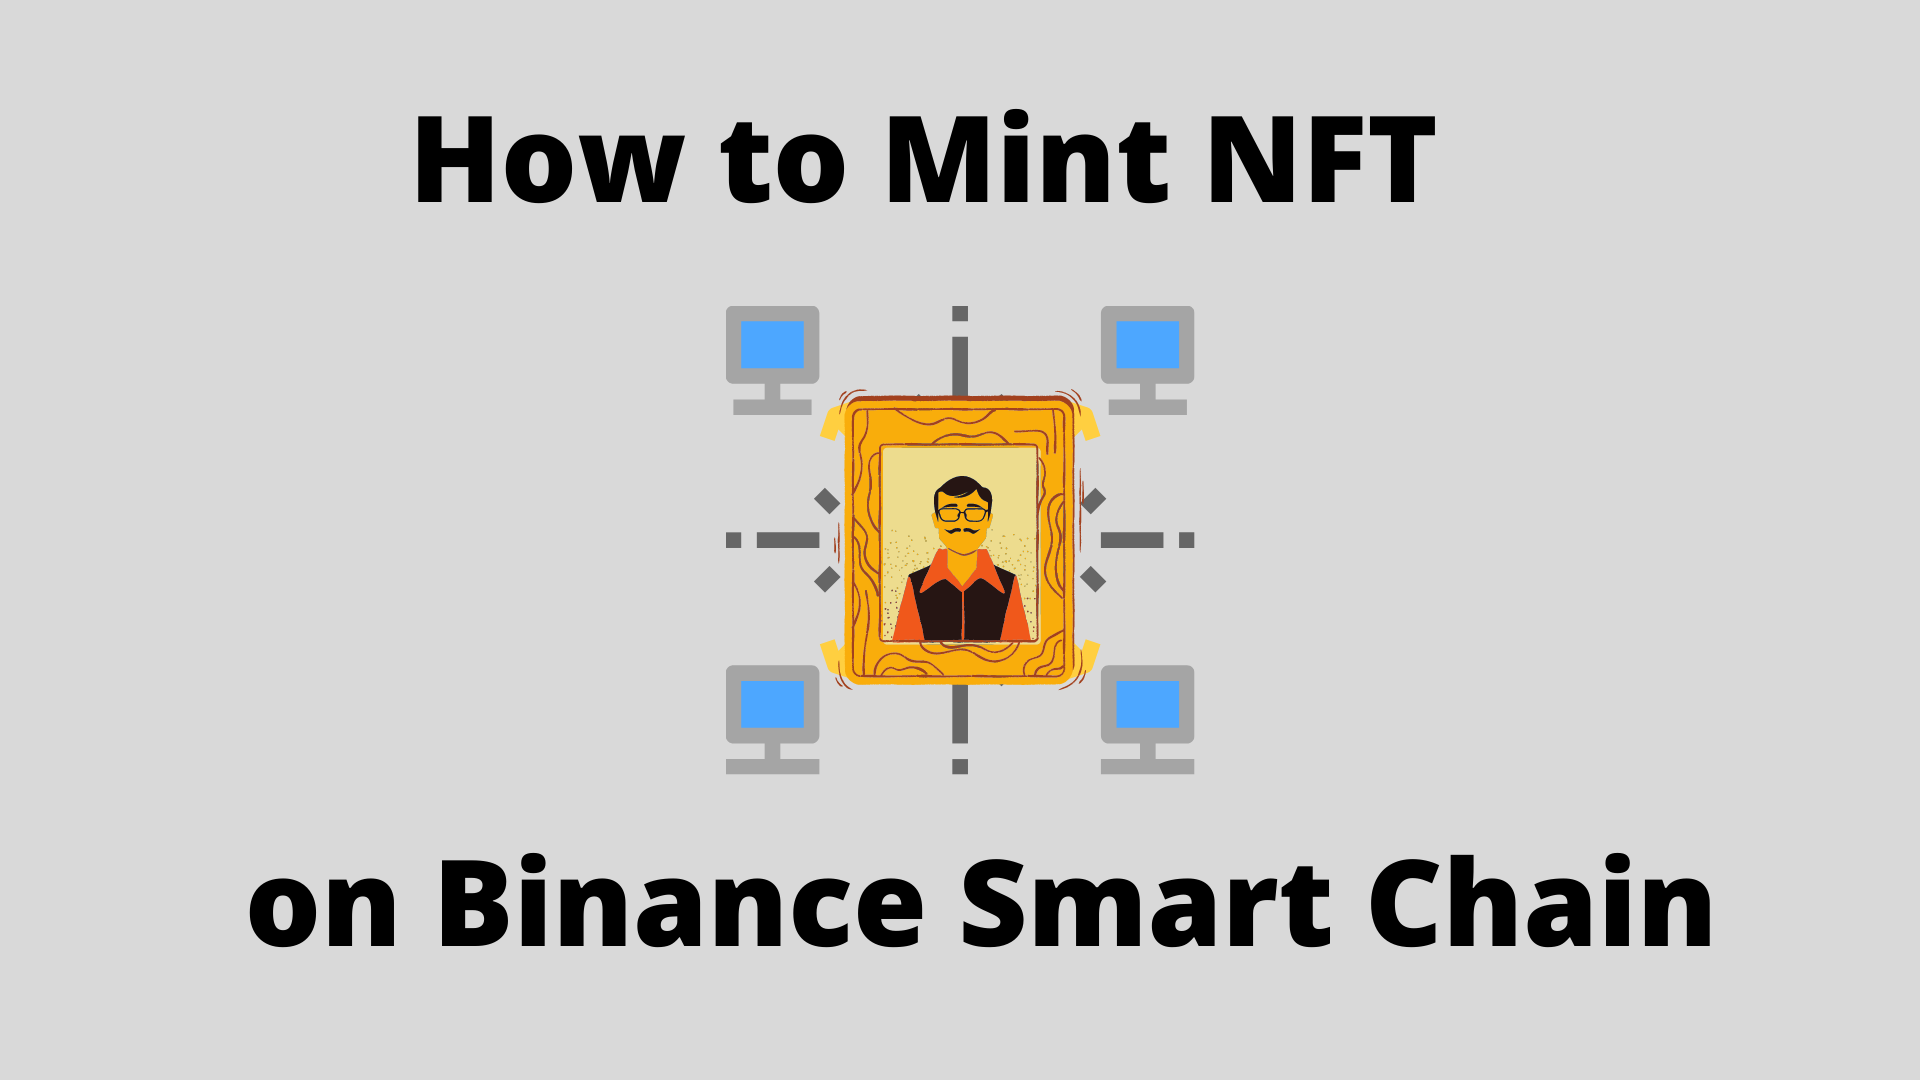 How to mint NFT on Binance Smart Chain